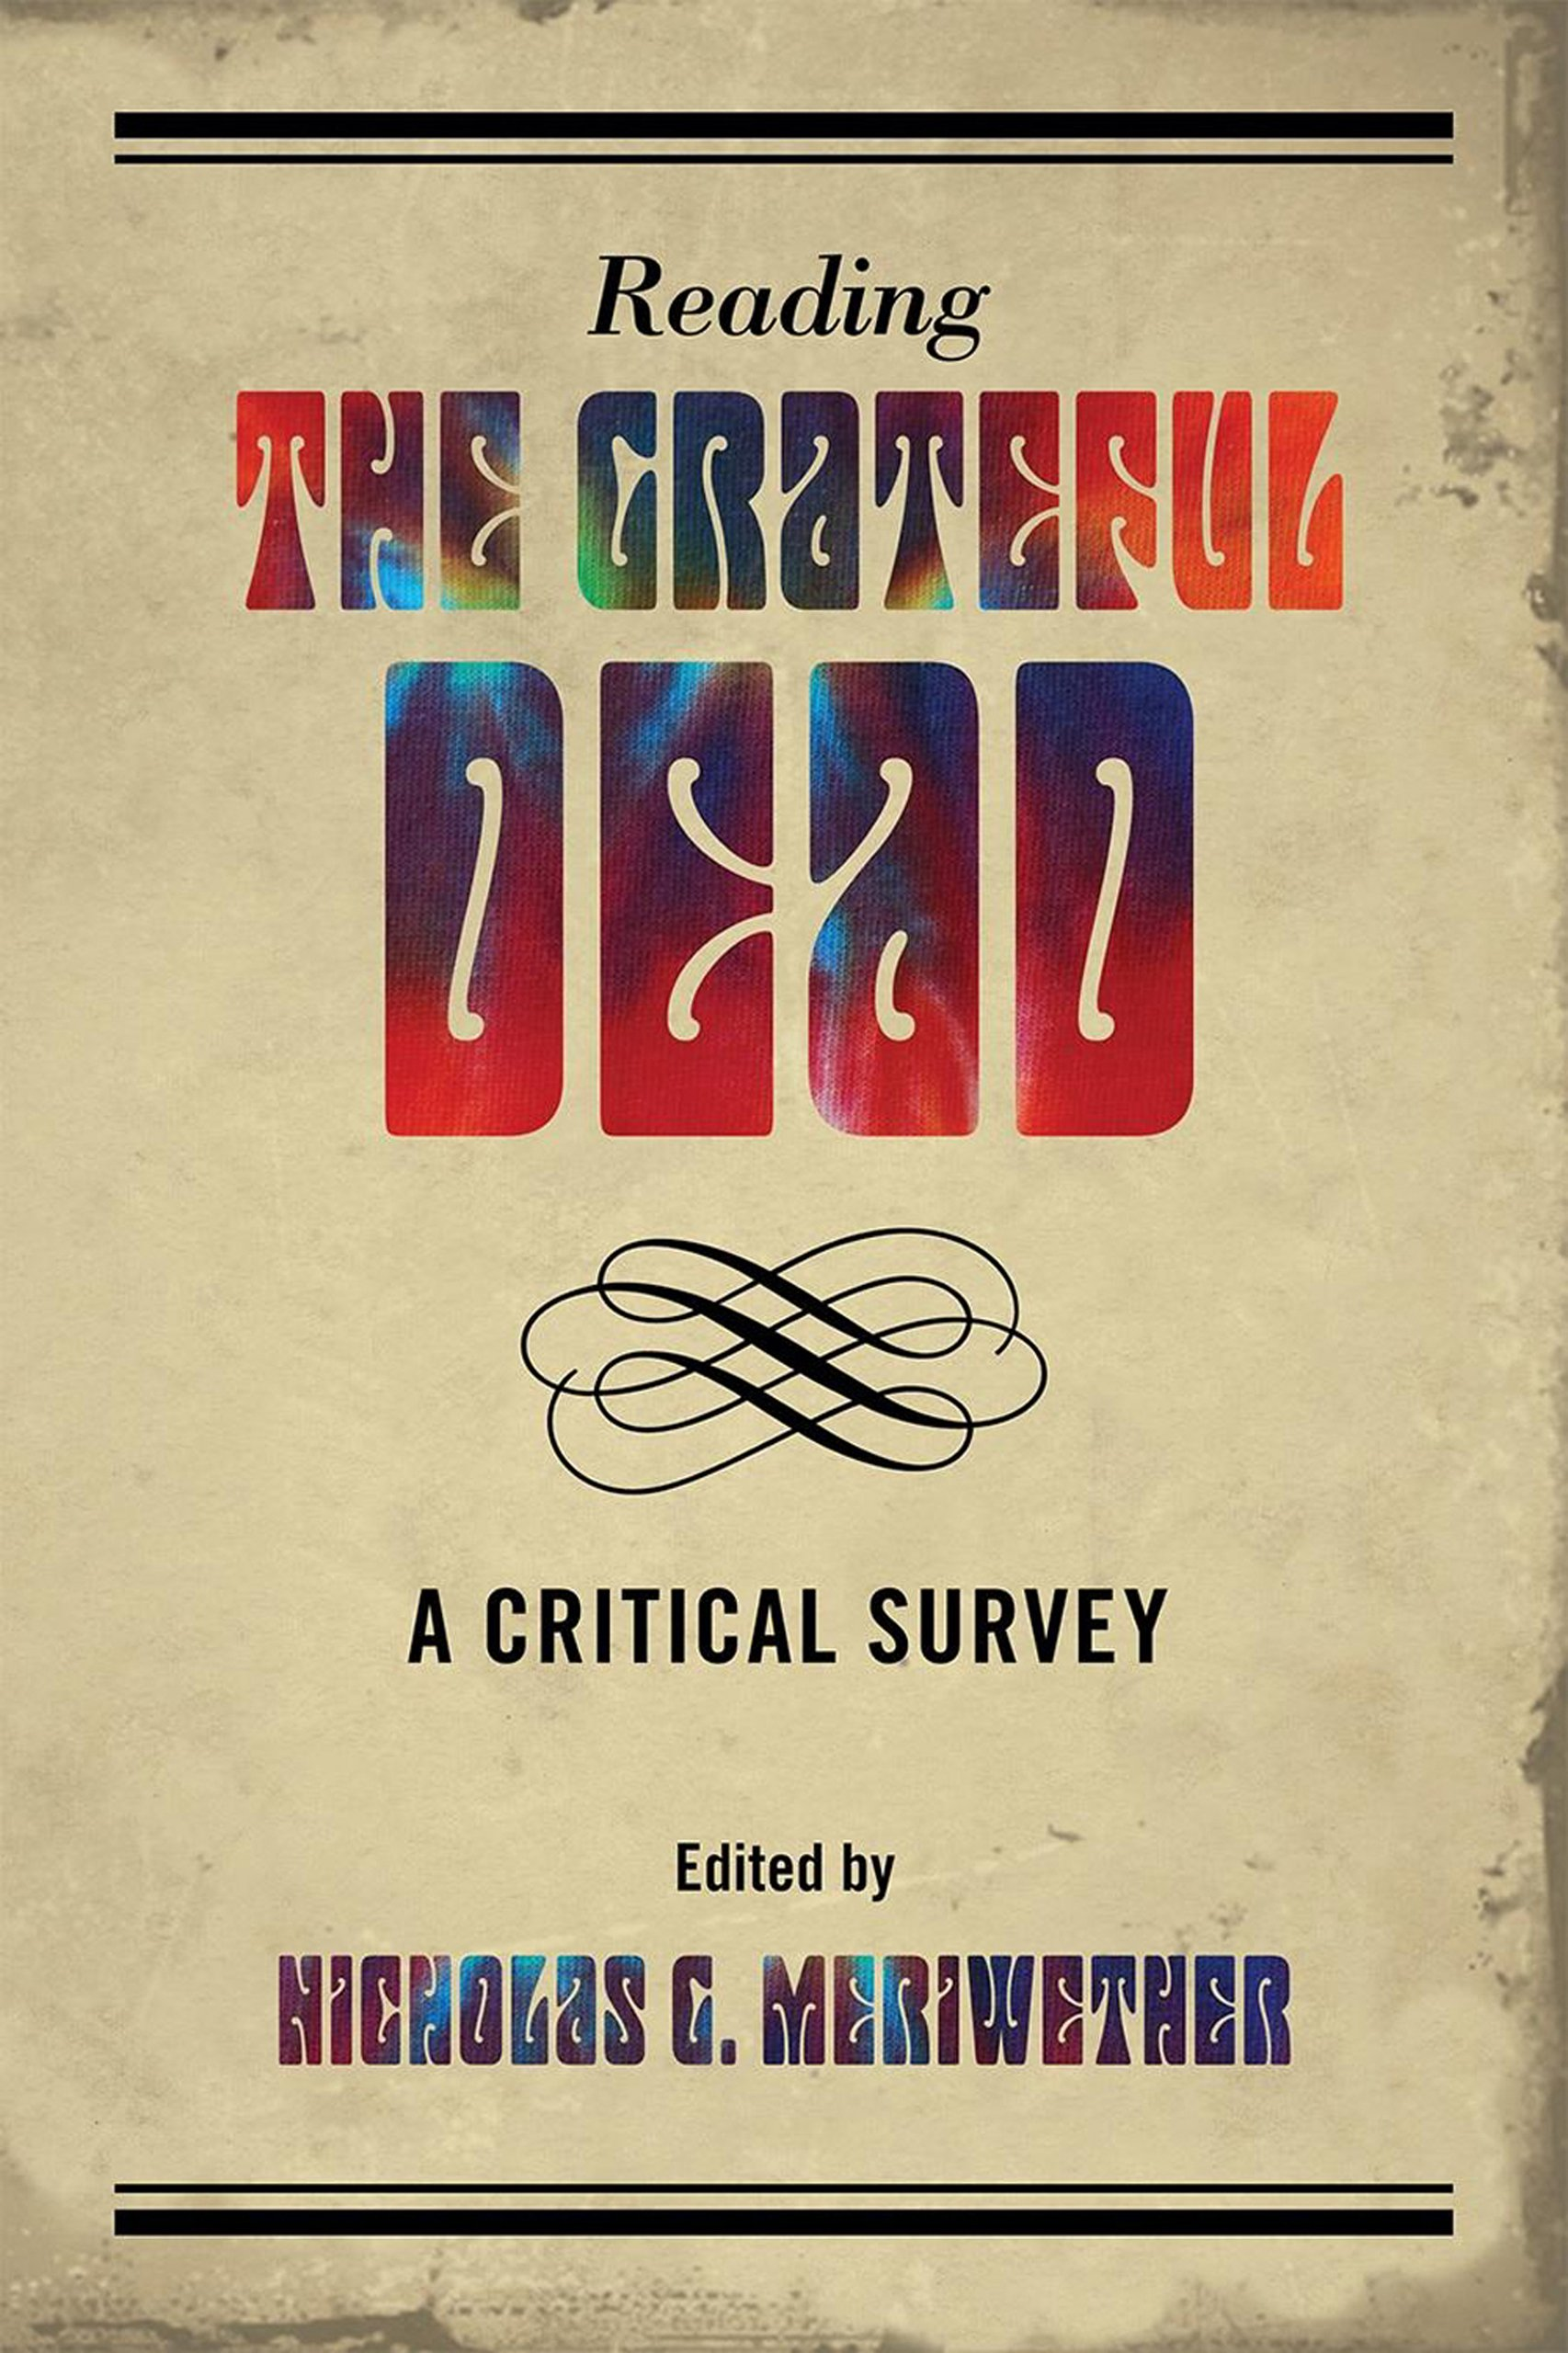 Nicholas Meriwether Reading The Grateful Dead: A Critical Survey